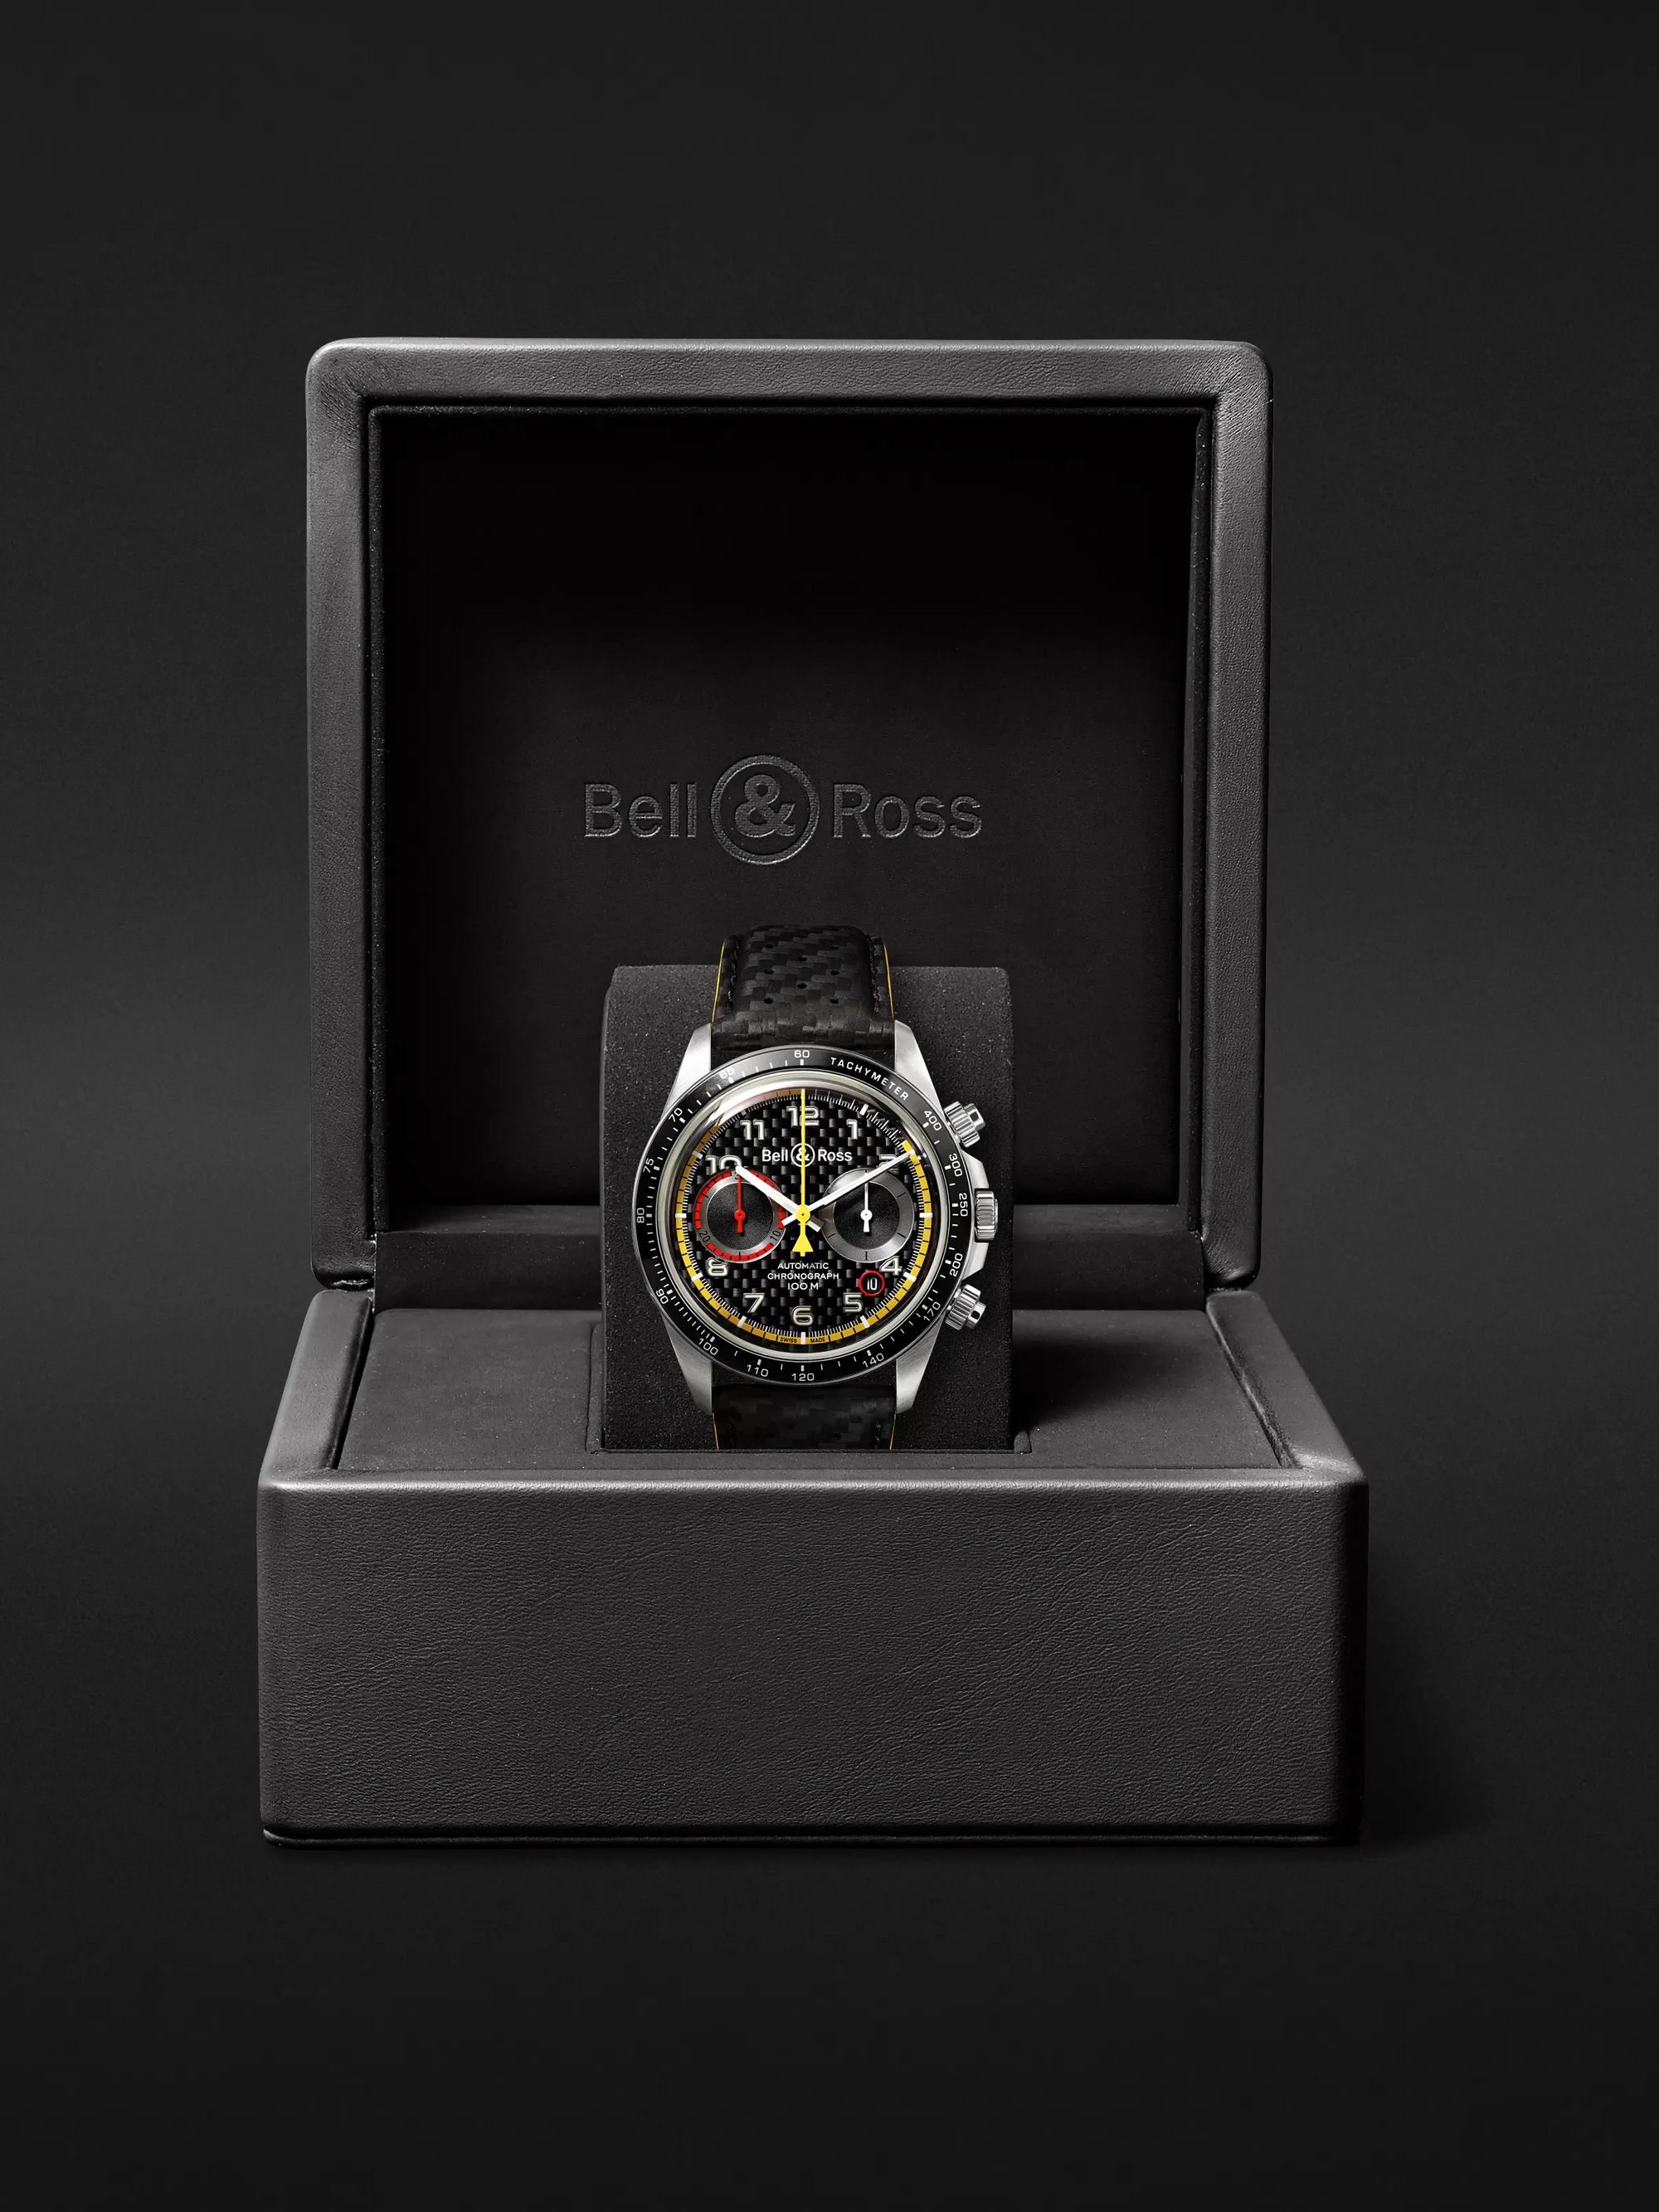 Bell & Ross BR V2-94 R.S.18 Renault Limited Edition Chronograph 41mm Stainless Steel and Leather Watch, Ref. No. BR0392-D-BL-BR/SCA